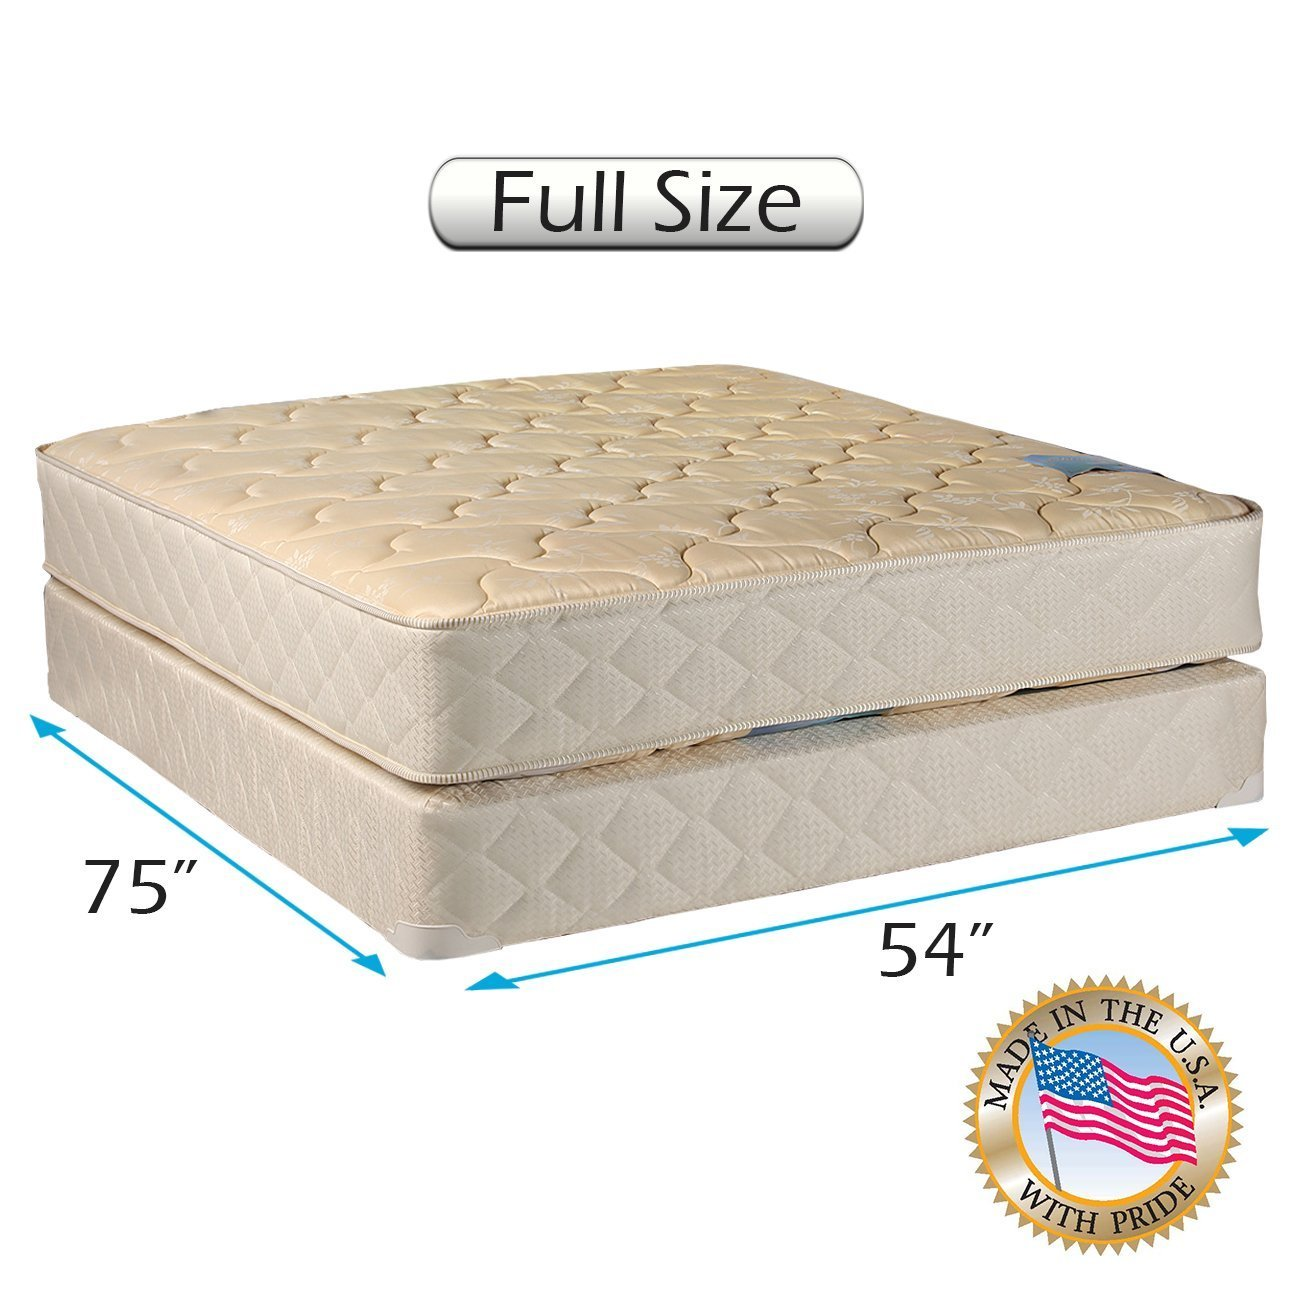 Chiro Premier Gentle Firm (Beige) Two-Sided Full Mattress Set with Mattress Cover Protector Included - Flippable, Fully Assembled, Orthopedic, Long Lasting by Dream Solutions USA by Dream Solutions USA